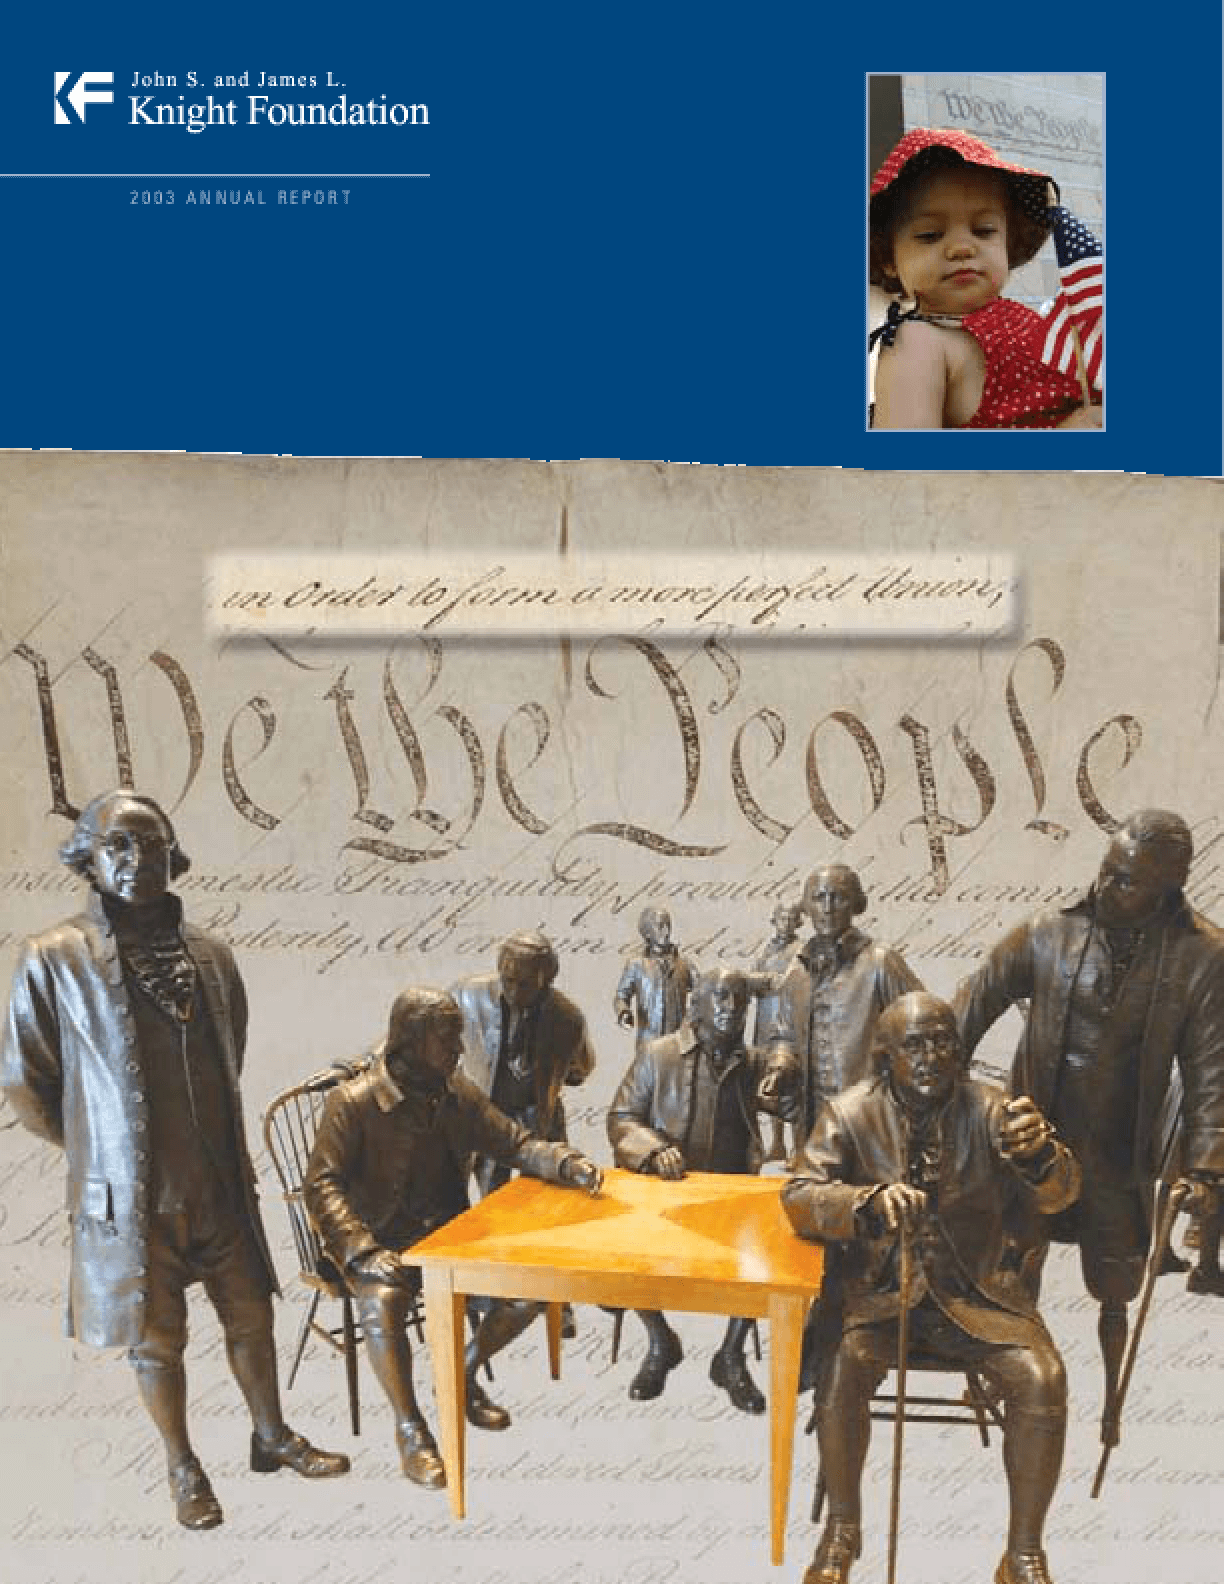 John S. and James L. Knight Foundation - 2003 Annual Report: Common Threads